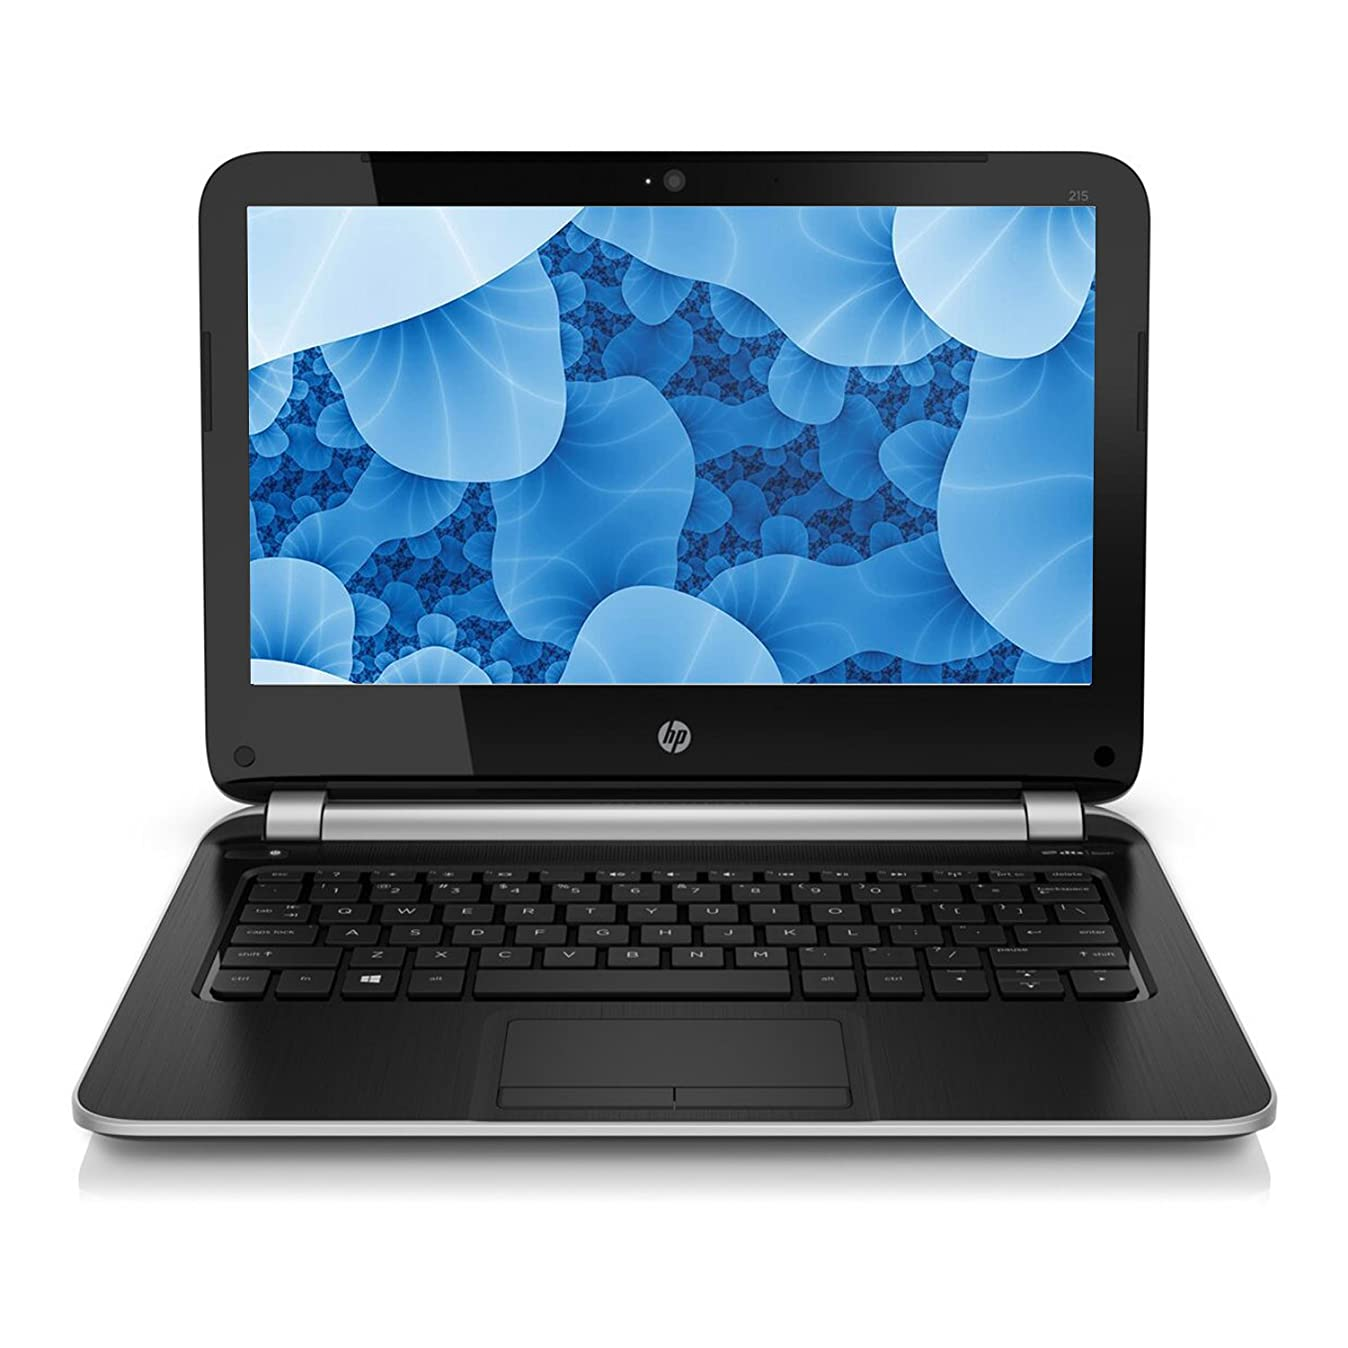 HP 215 G1 11.6 Inch Laptop AMD A6-1450 1.0GHz 8GB DDR3 Ram 320GB Hard Drive Touchscreen Windows 10 Professional (Renewed) gikqivvge